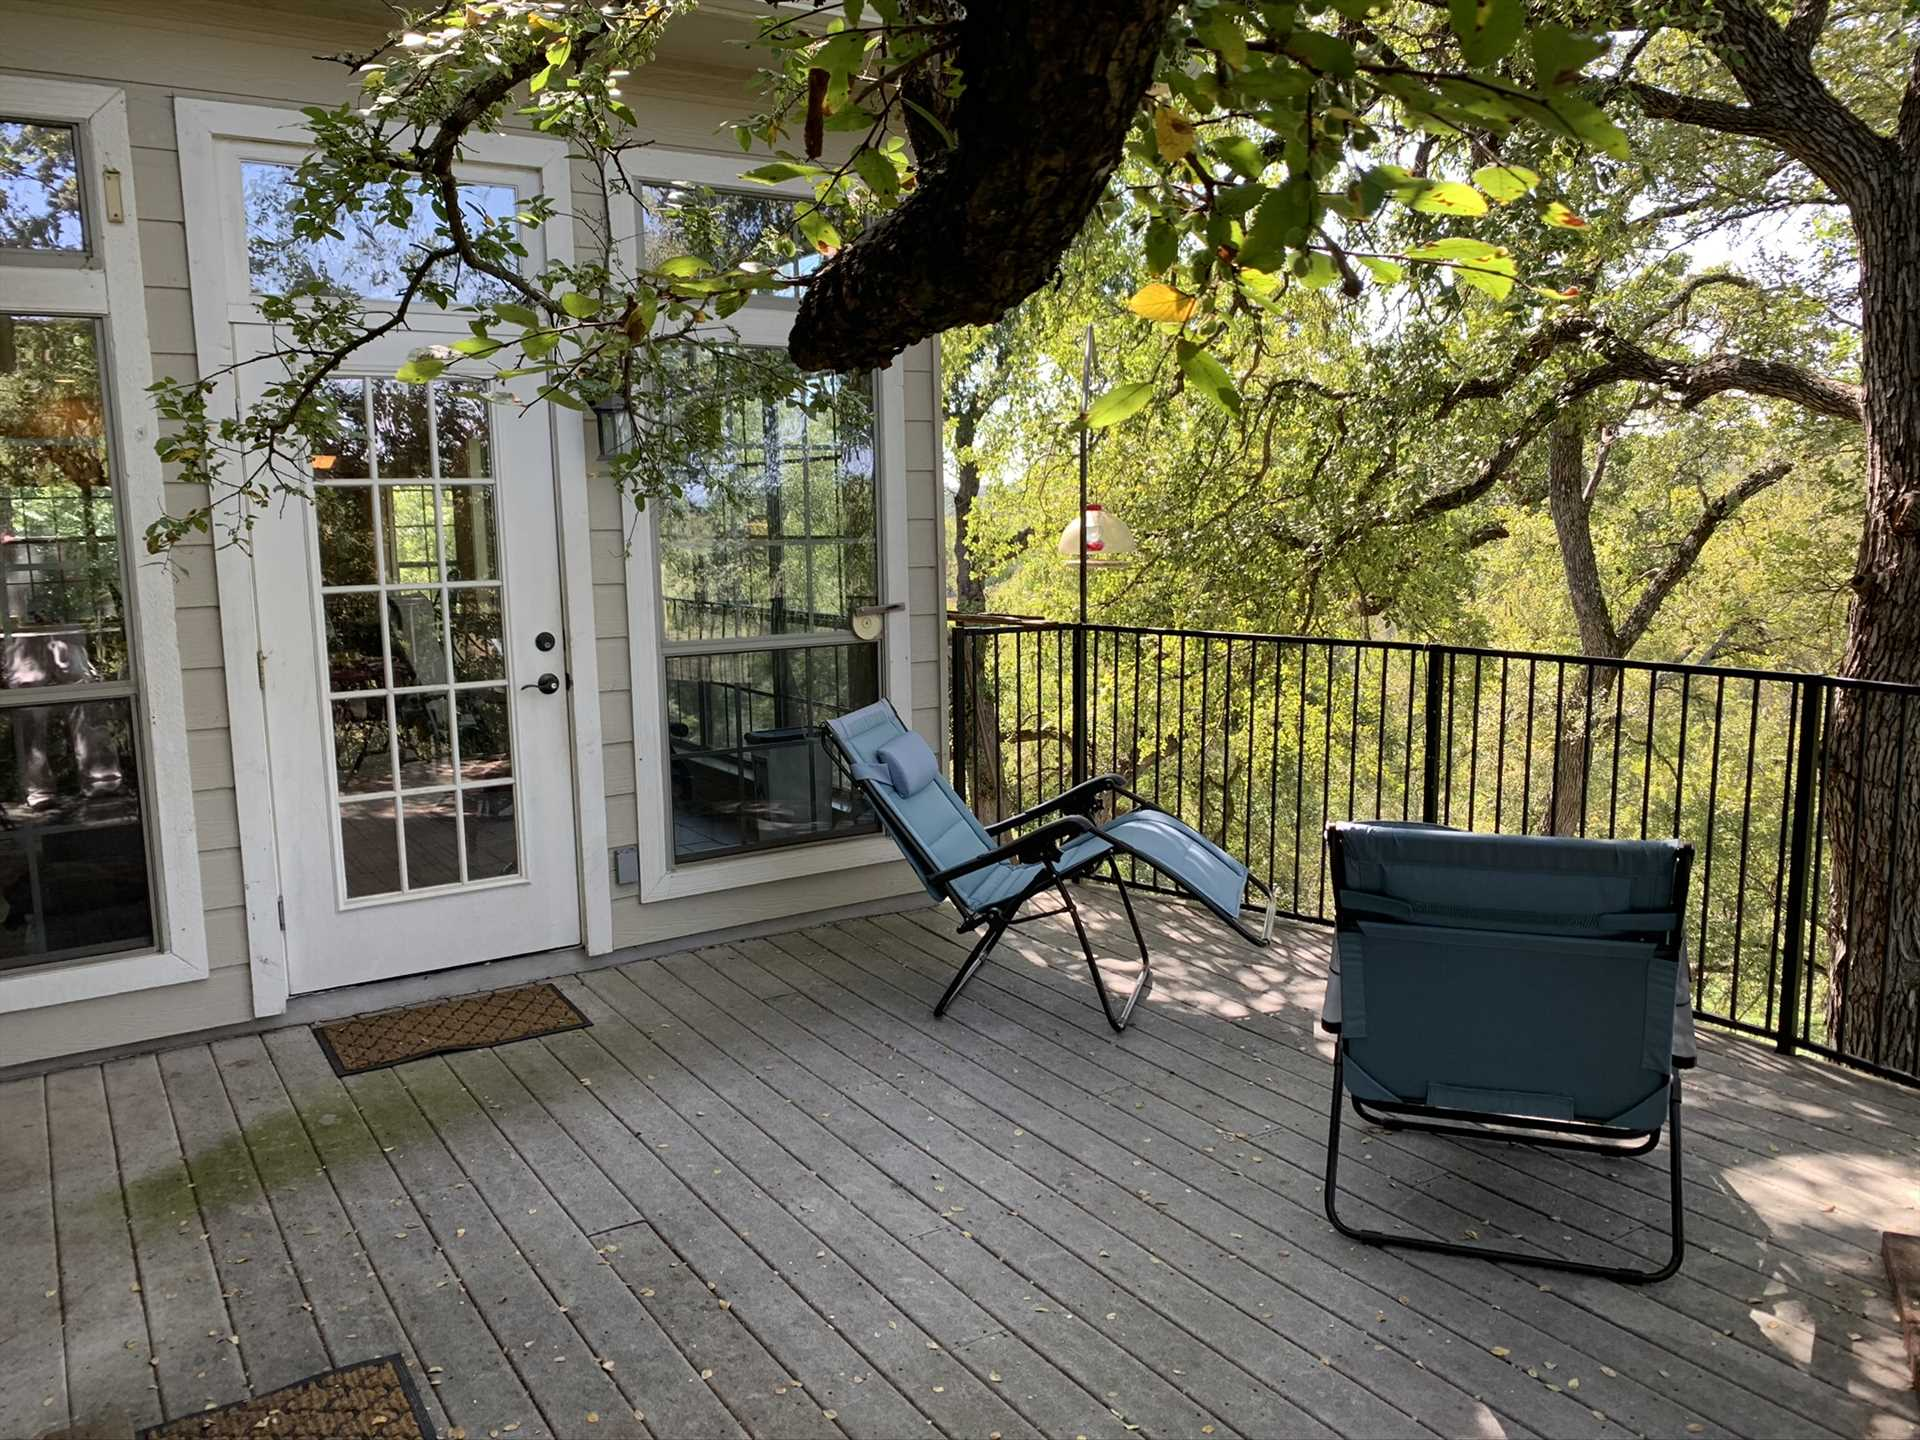 The tree-shaded patio is located up high, for stunning views! Kids and pets are protected on the patio by sturdy fencing. Please note that the path down to the river from here can be steep and occasionally slippery.